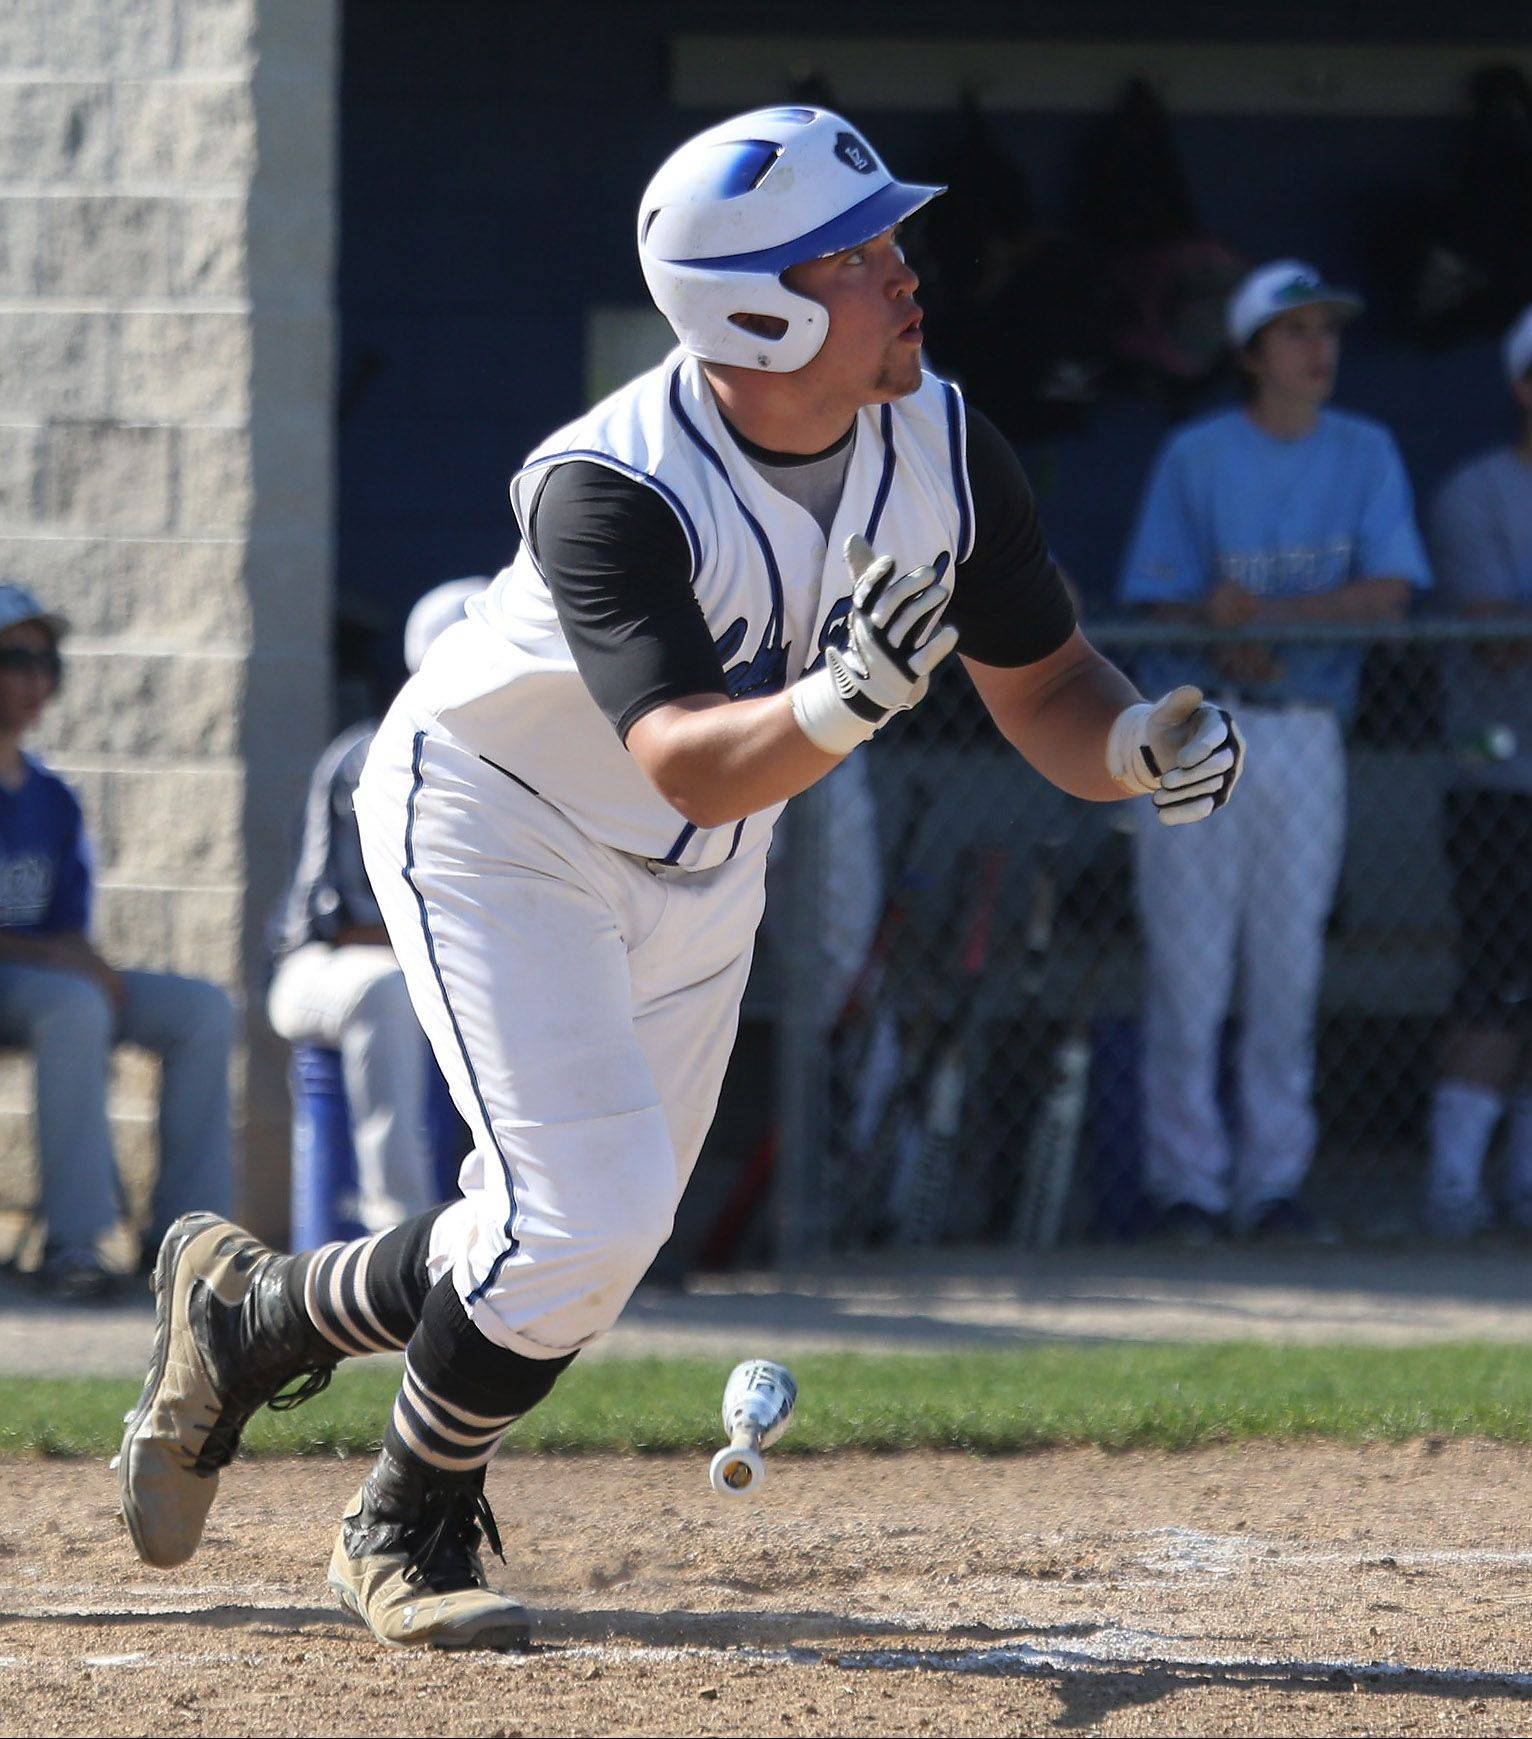 Lake Zurich's Tanner Kizer watches the ball clear the fence on a 3-run homer in the first inning during Monday's regional contest against visiting Prospect.